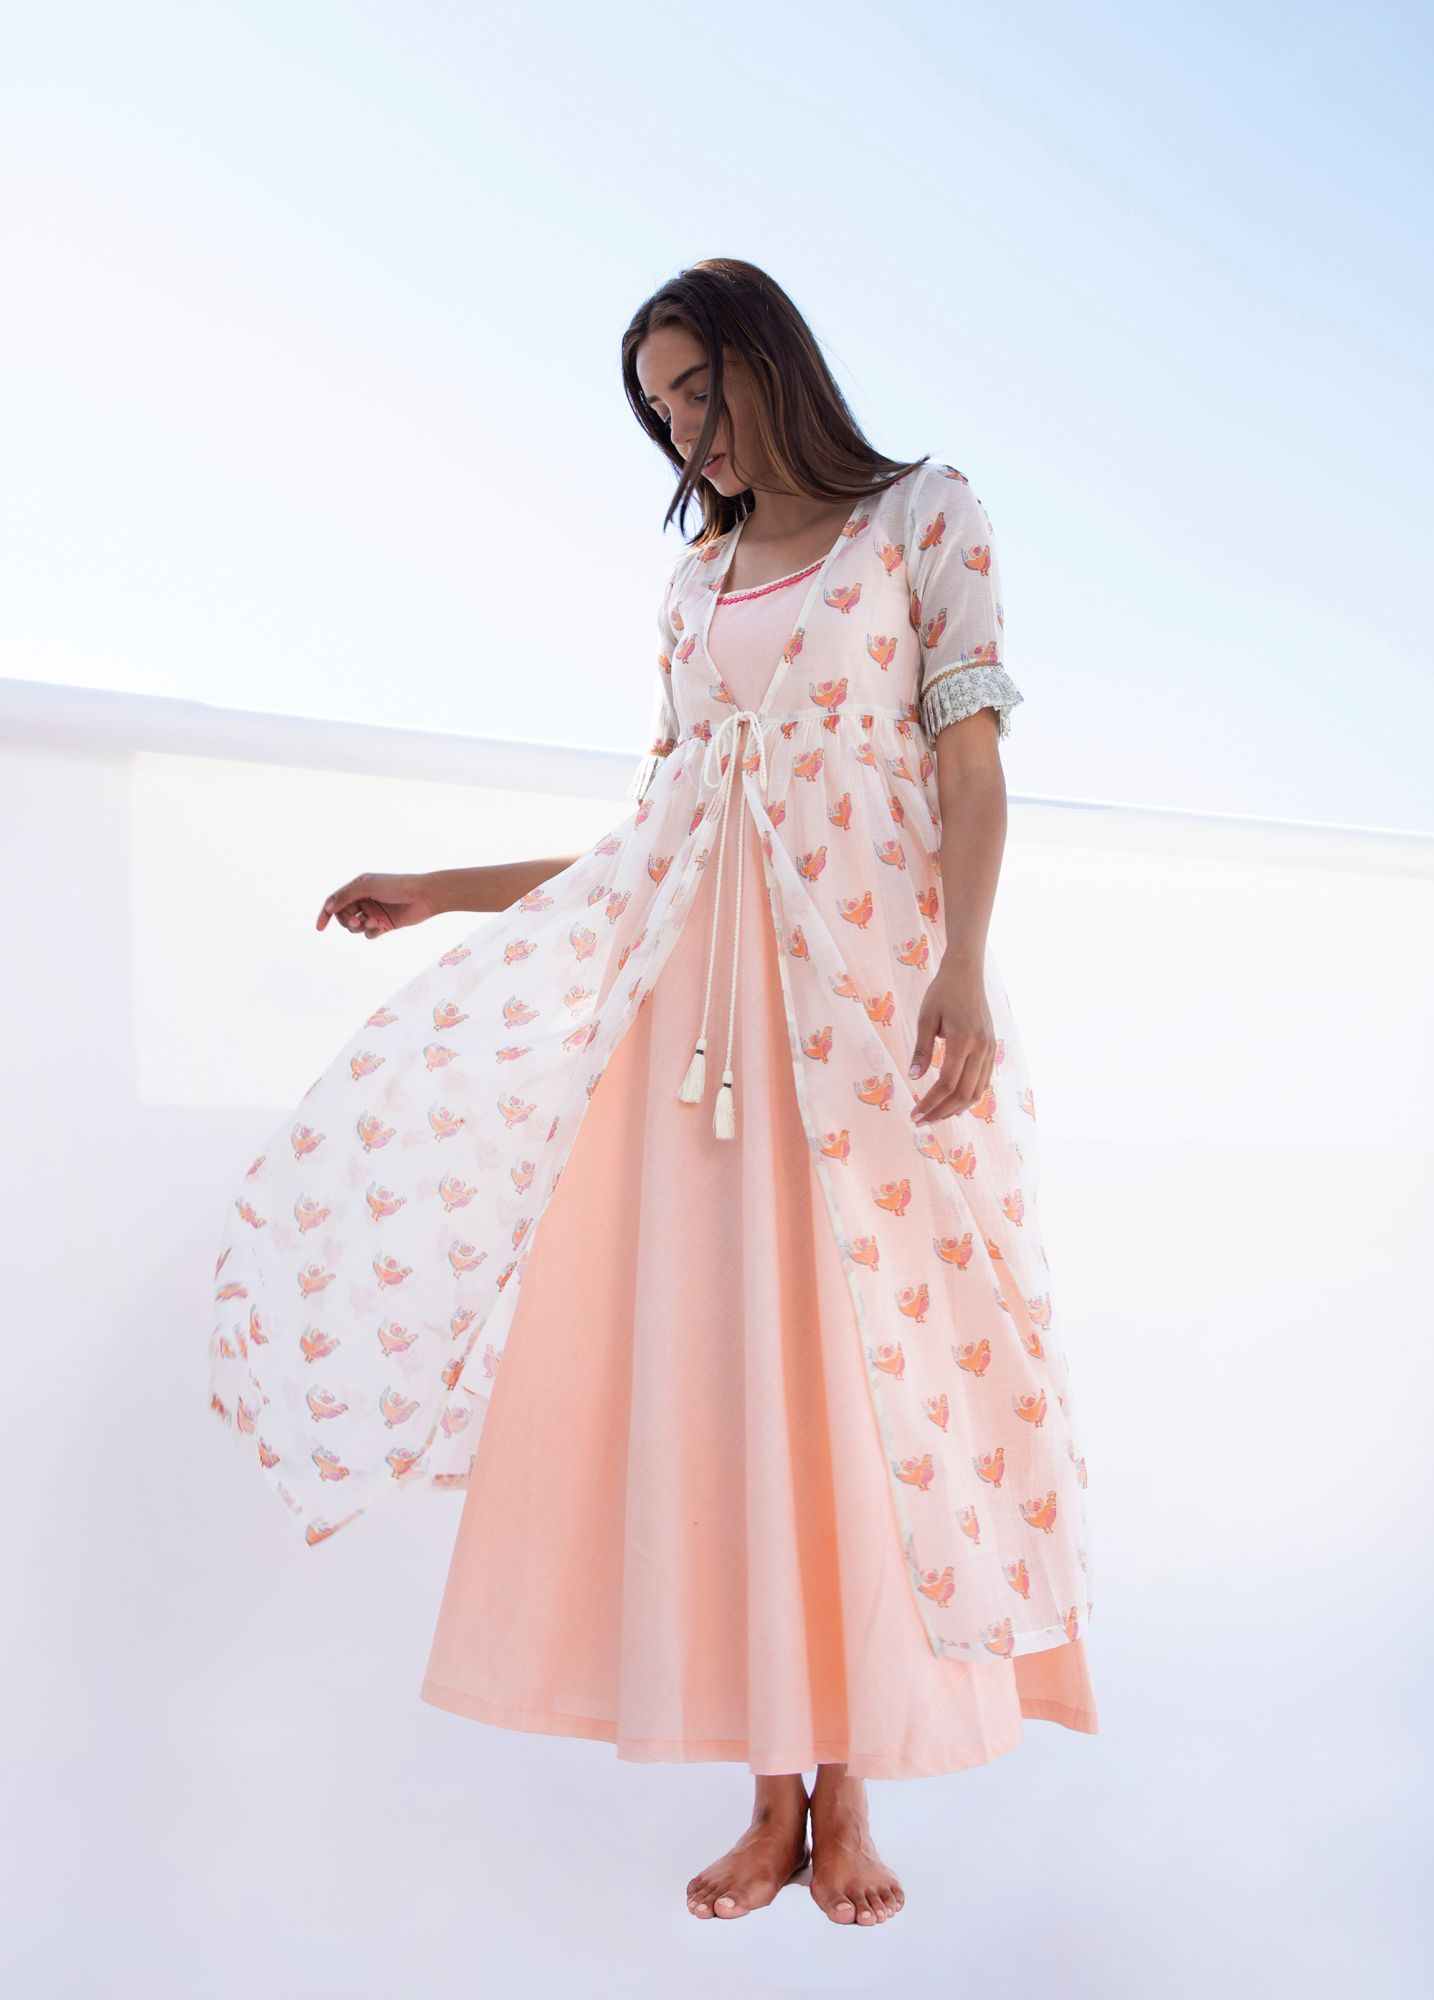 Masakali Peach Jacket set